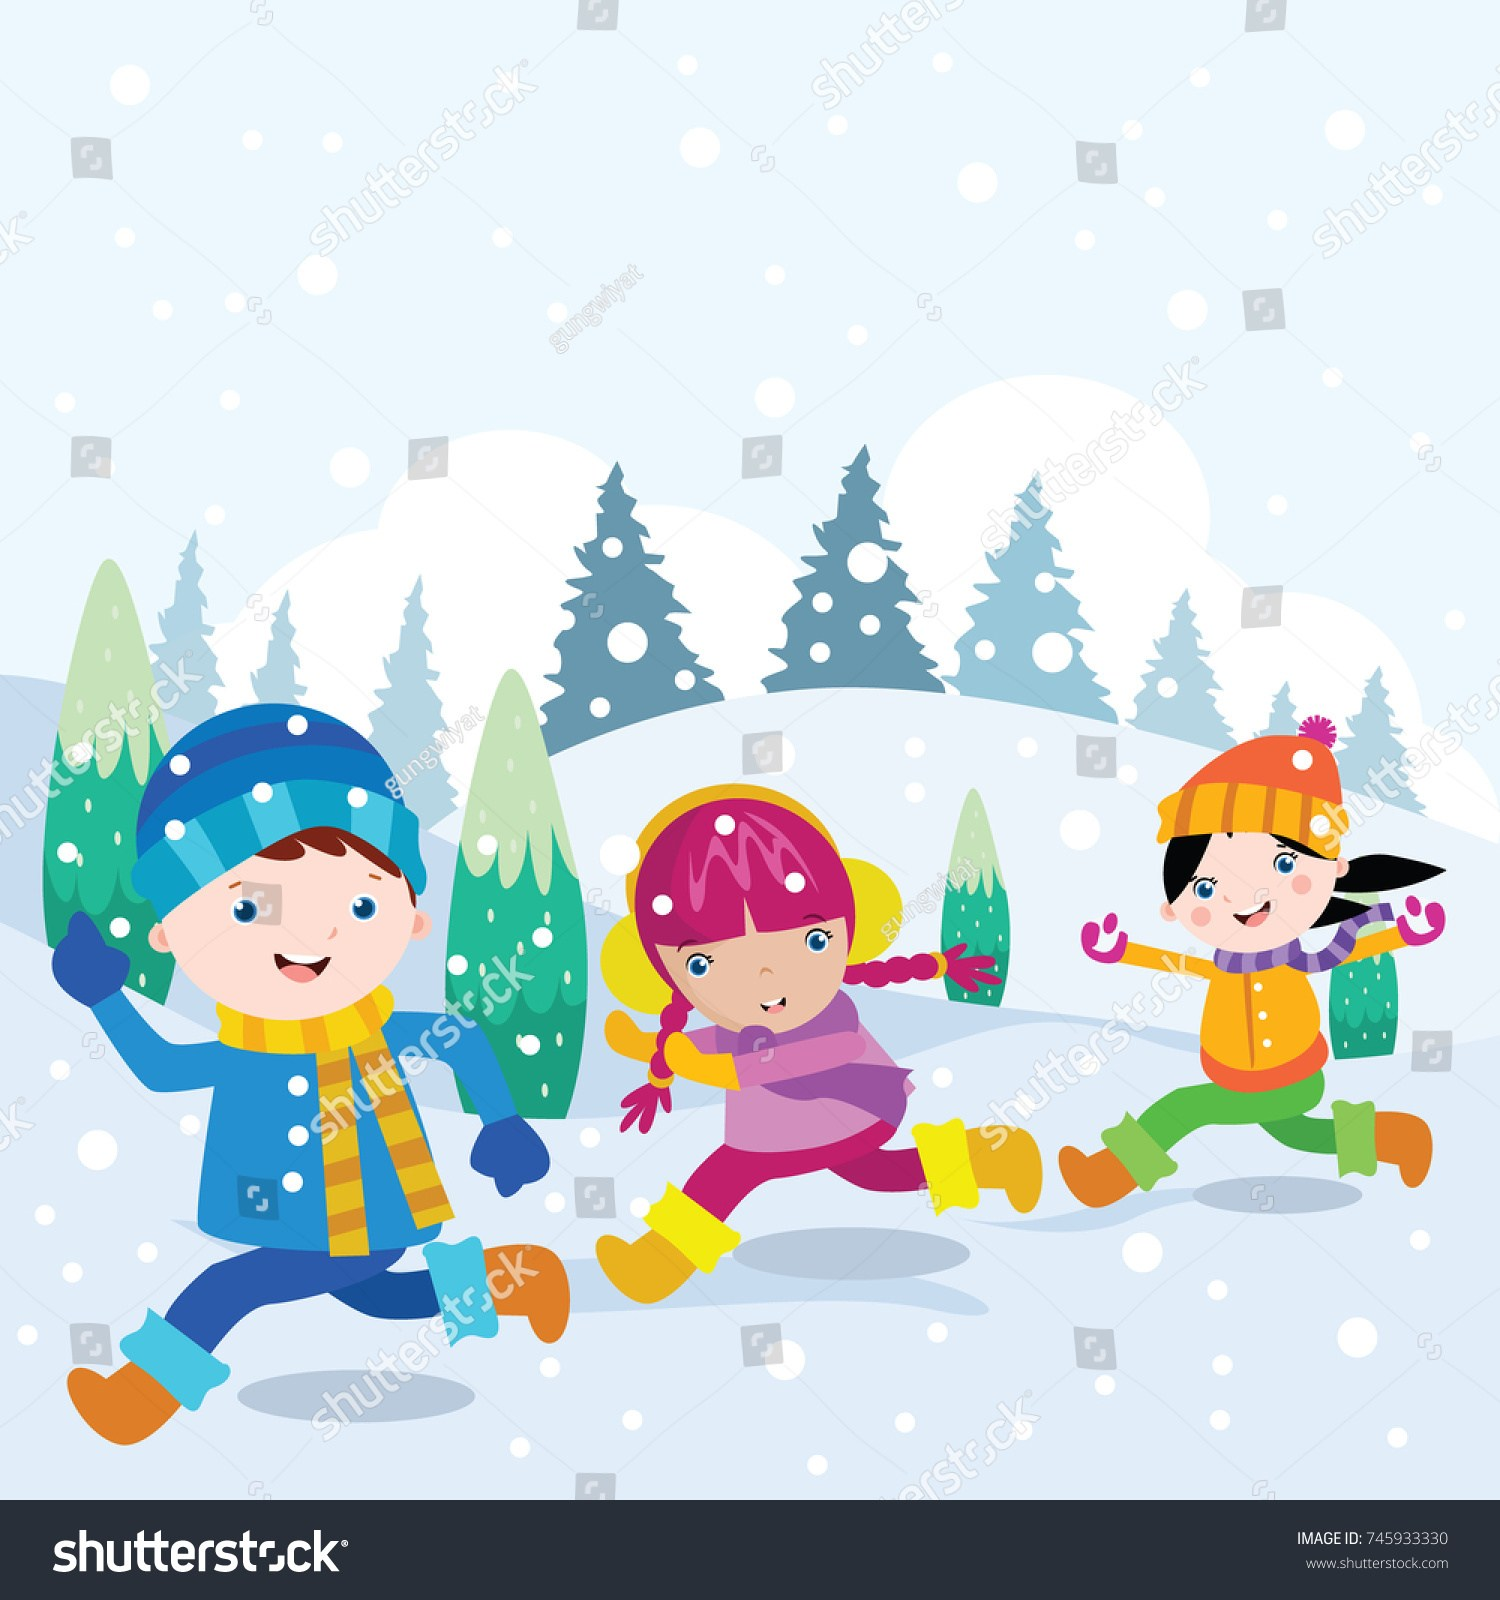 Playing in snow clipart clipart freeuse stock Playing in snow clipart 5 » Clipart Portal clipart freeuse stock